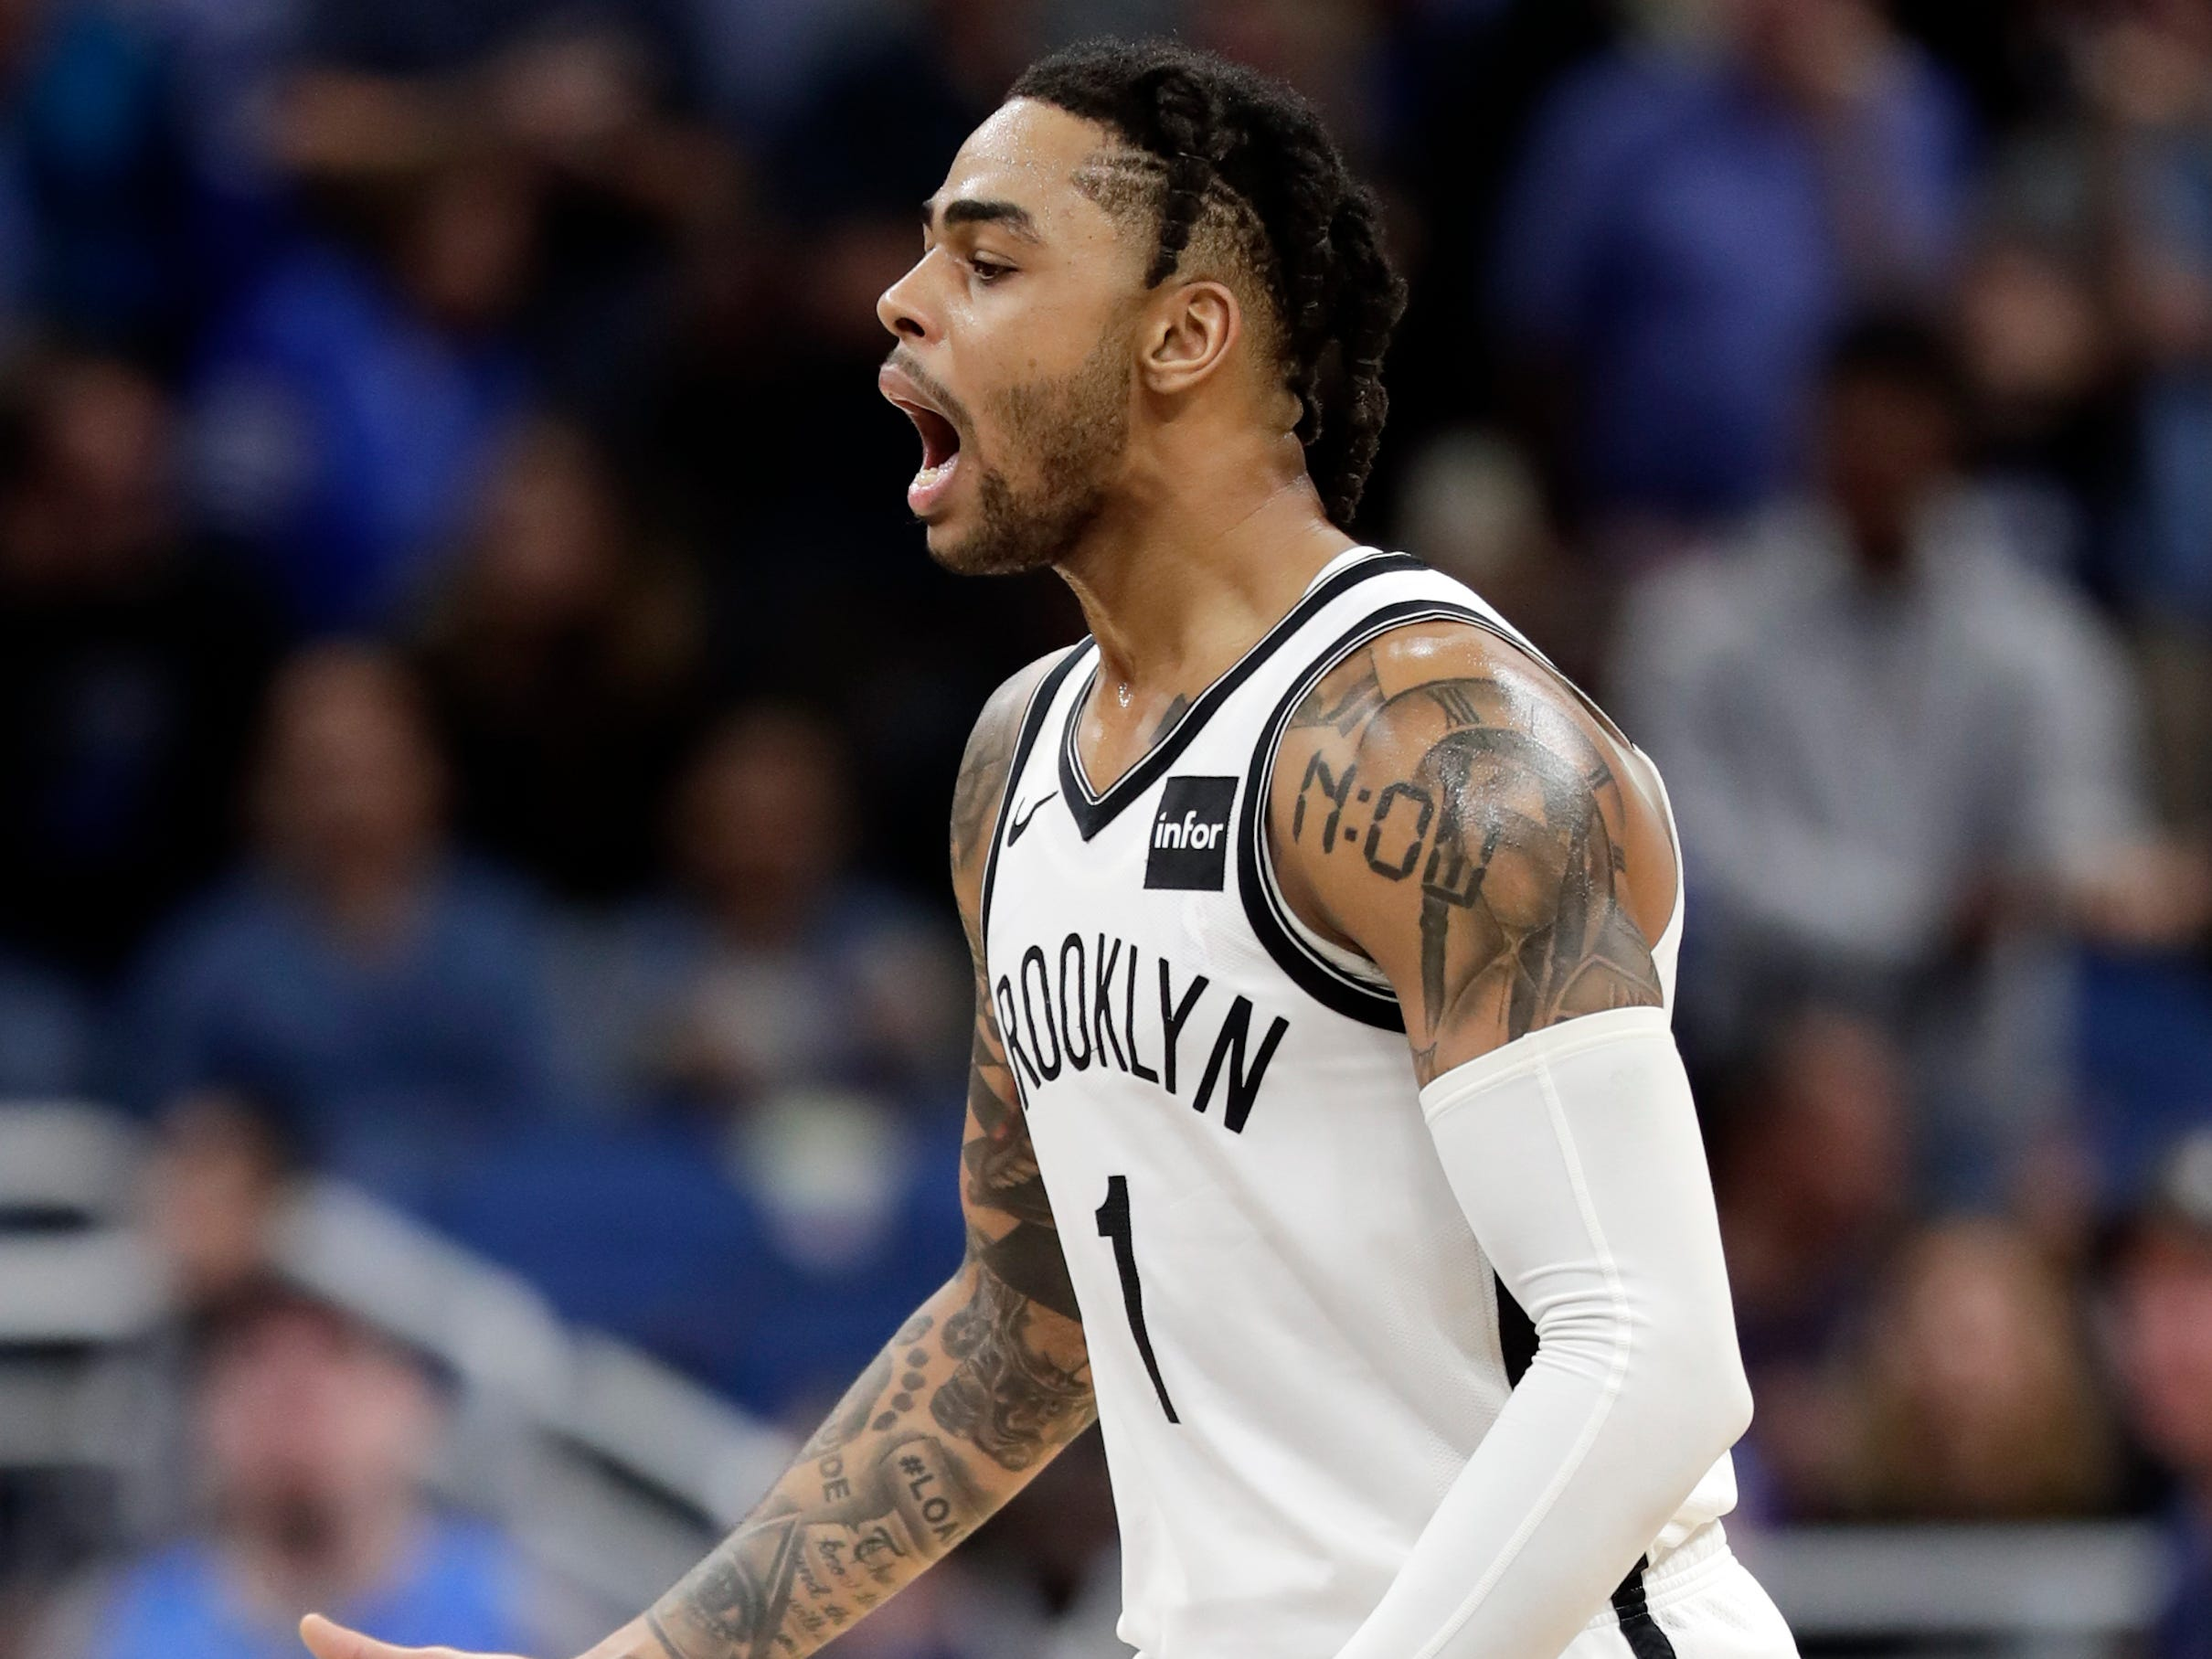 Brooklyn Nets' D'Angelo Russell celebrates after making a 3-point shot during the final moments of the team's NBA basketball game against the Orlando Magic, Friday, Jan. 18, 2019, in Orlando, Fla.